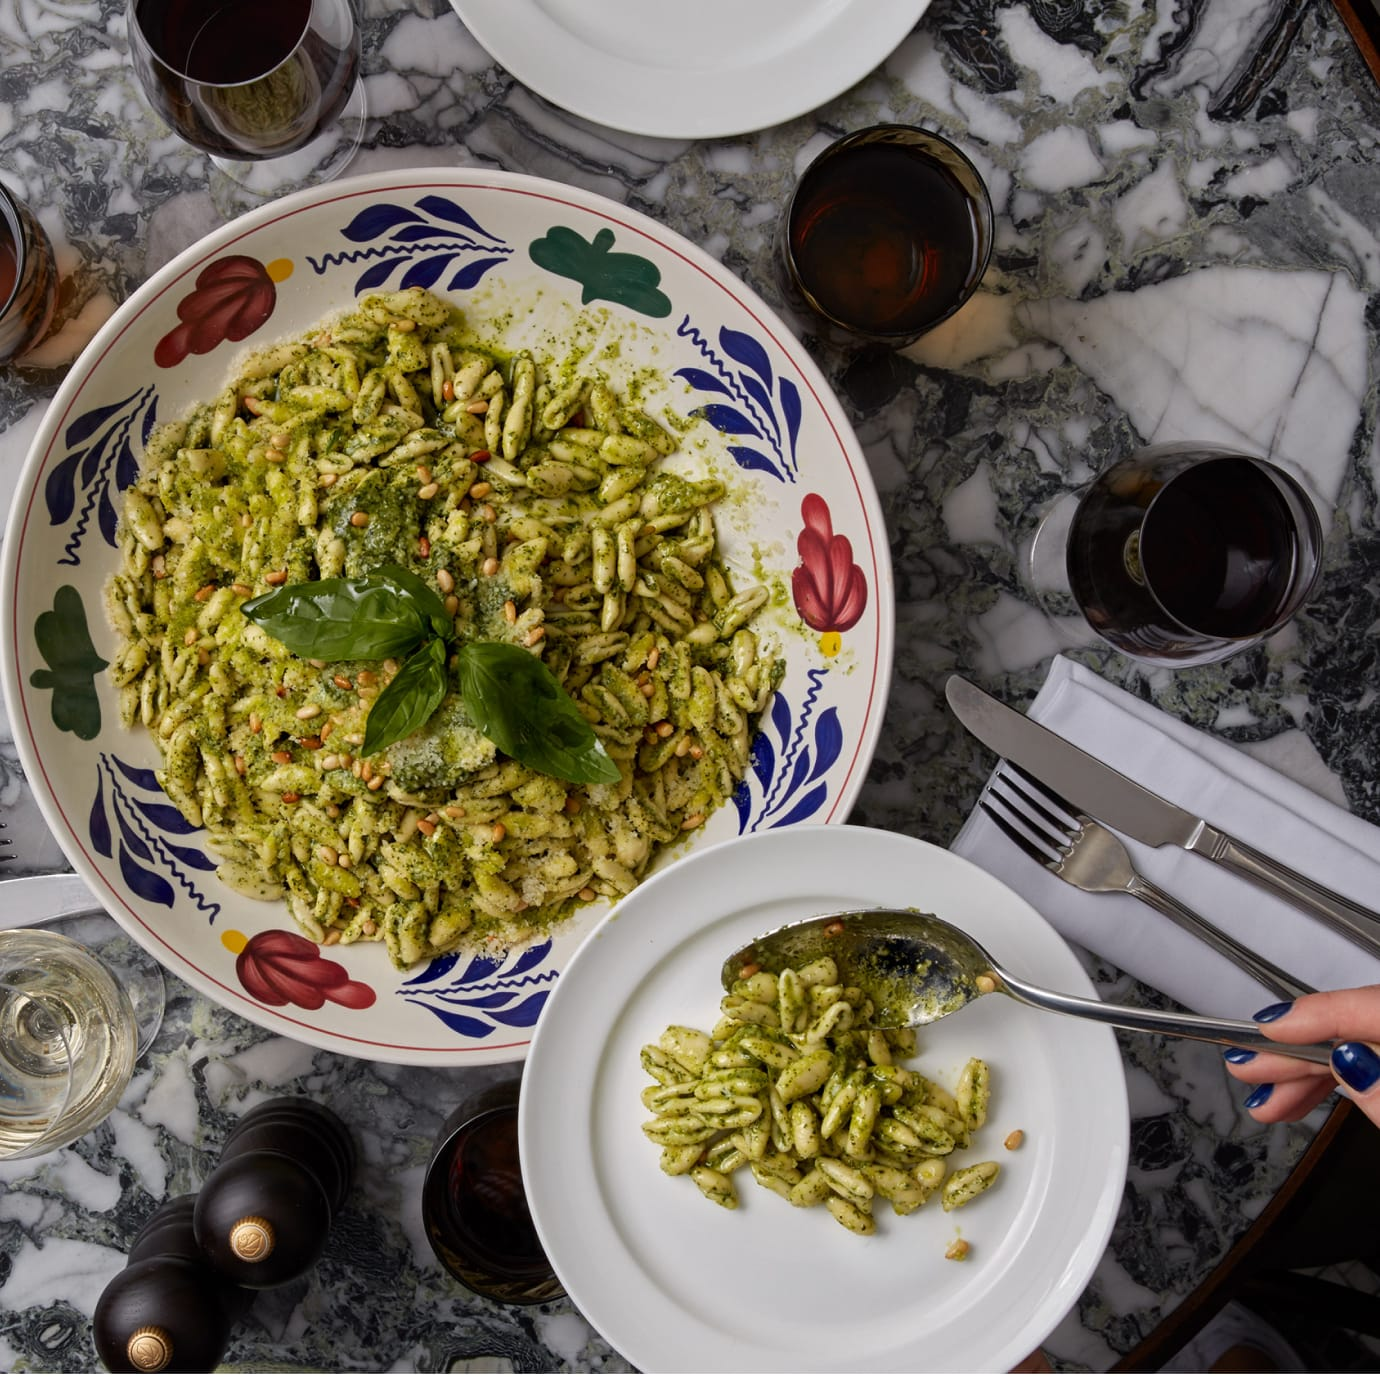 A person dishing out a plate of pasta from a sharing plate.